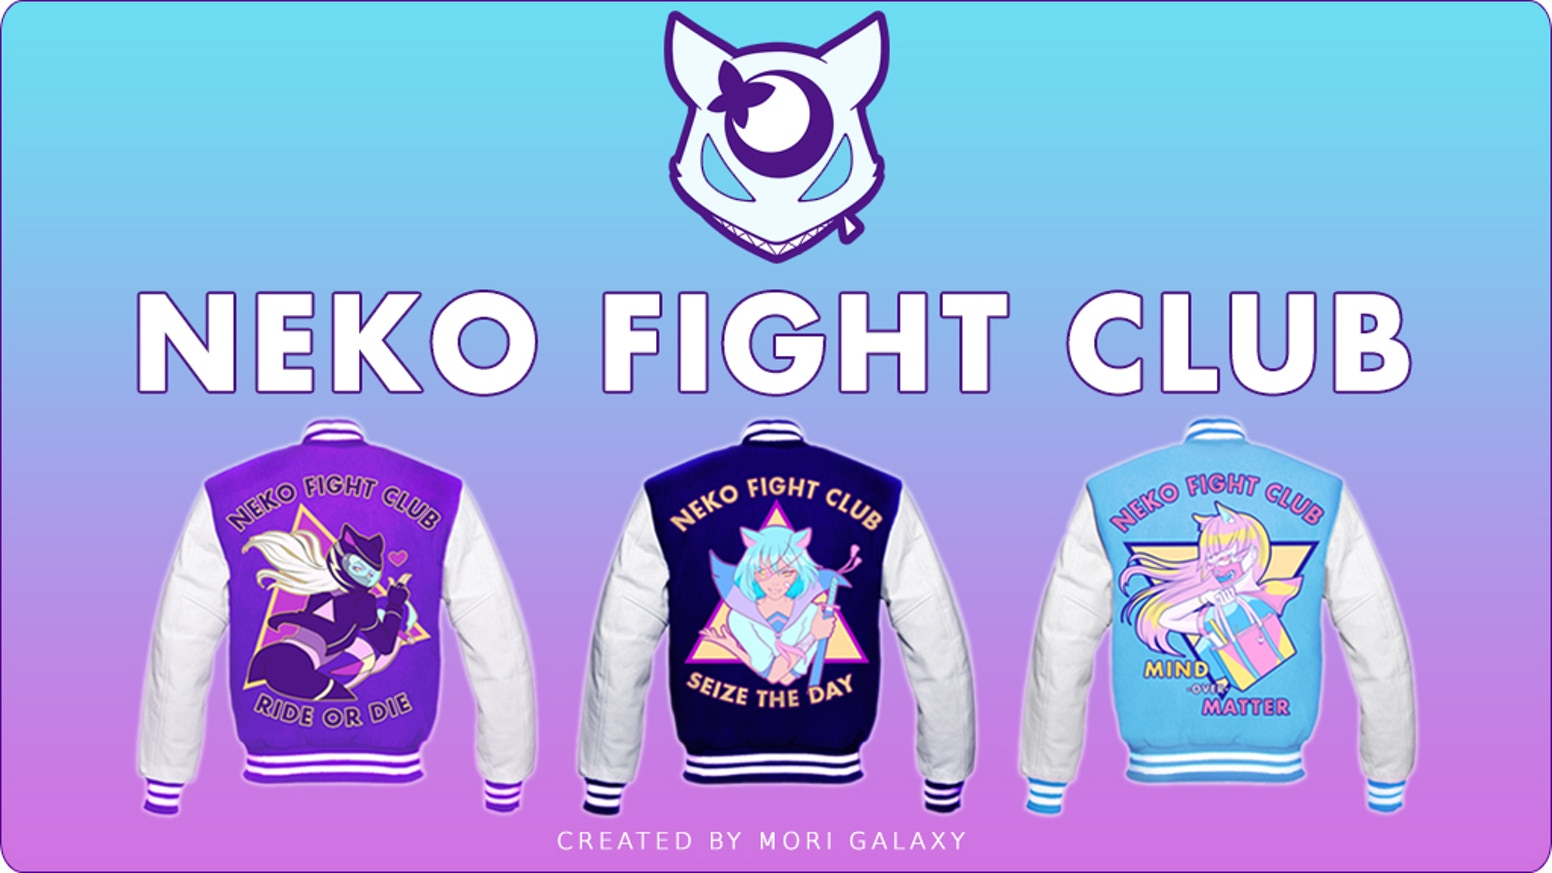 Even cute girls can look tough! Creating jackets to show off our skills, talent, and strengths. Find out which Neko best represent you!